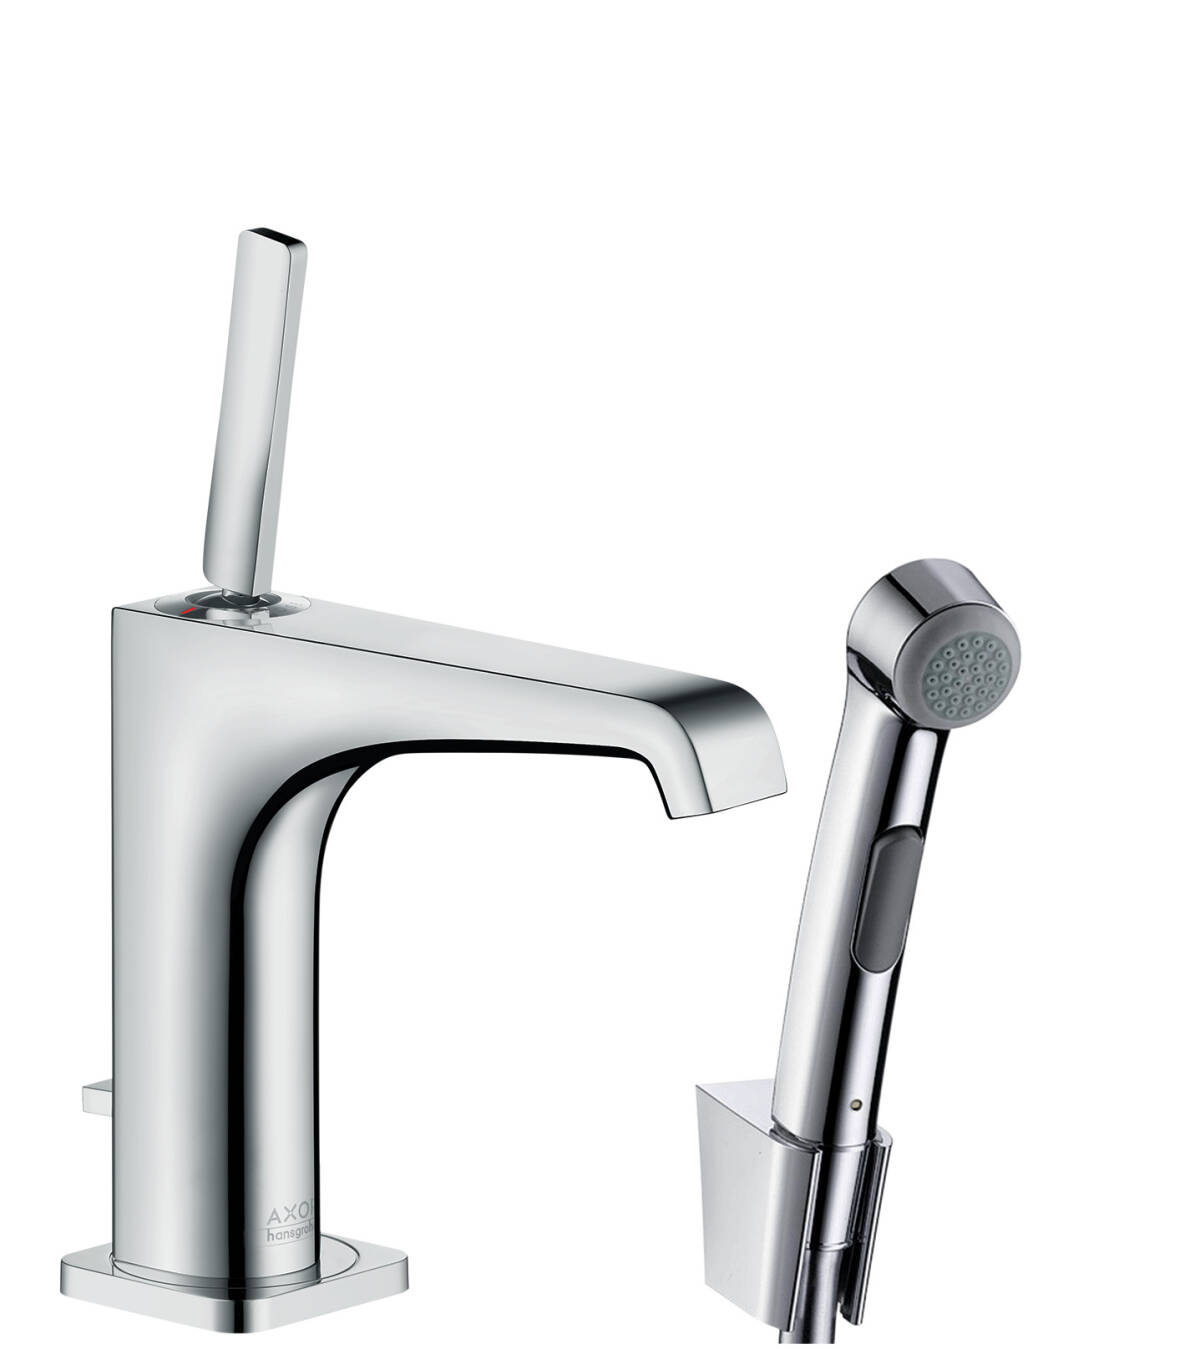 Single lever basin mixer 130 with bidette hand shower and shower hose 1.60 m, Chrome, 36130000